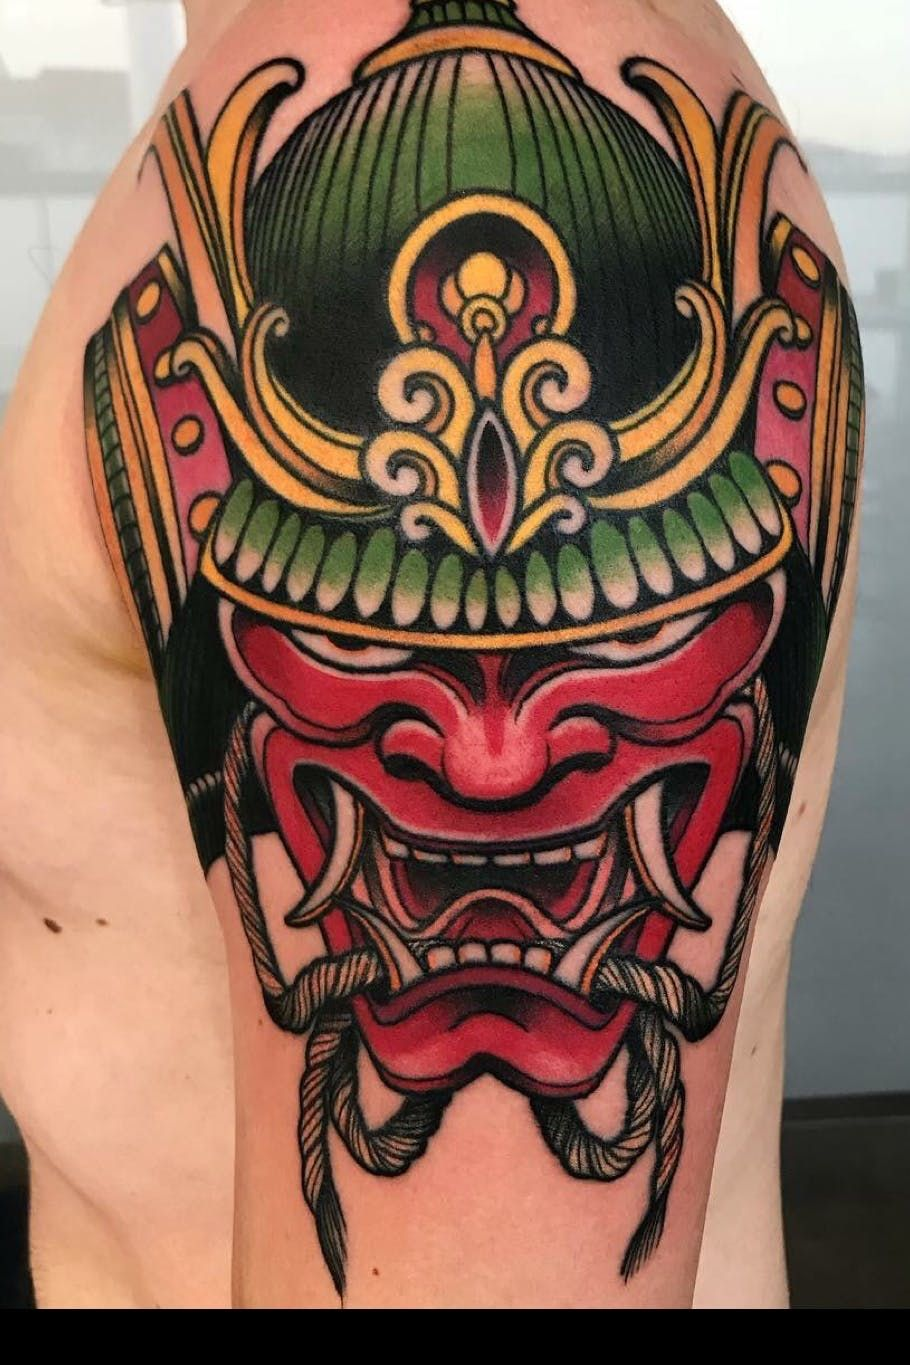 101 Amazing Samurai Mask Tattoo Ideas That Will Blow Your